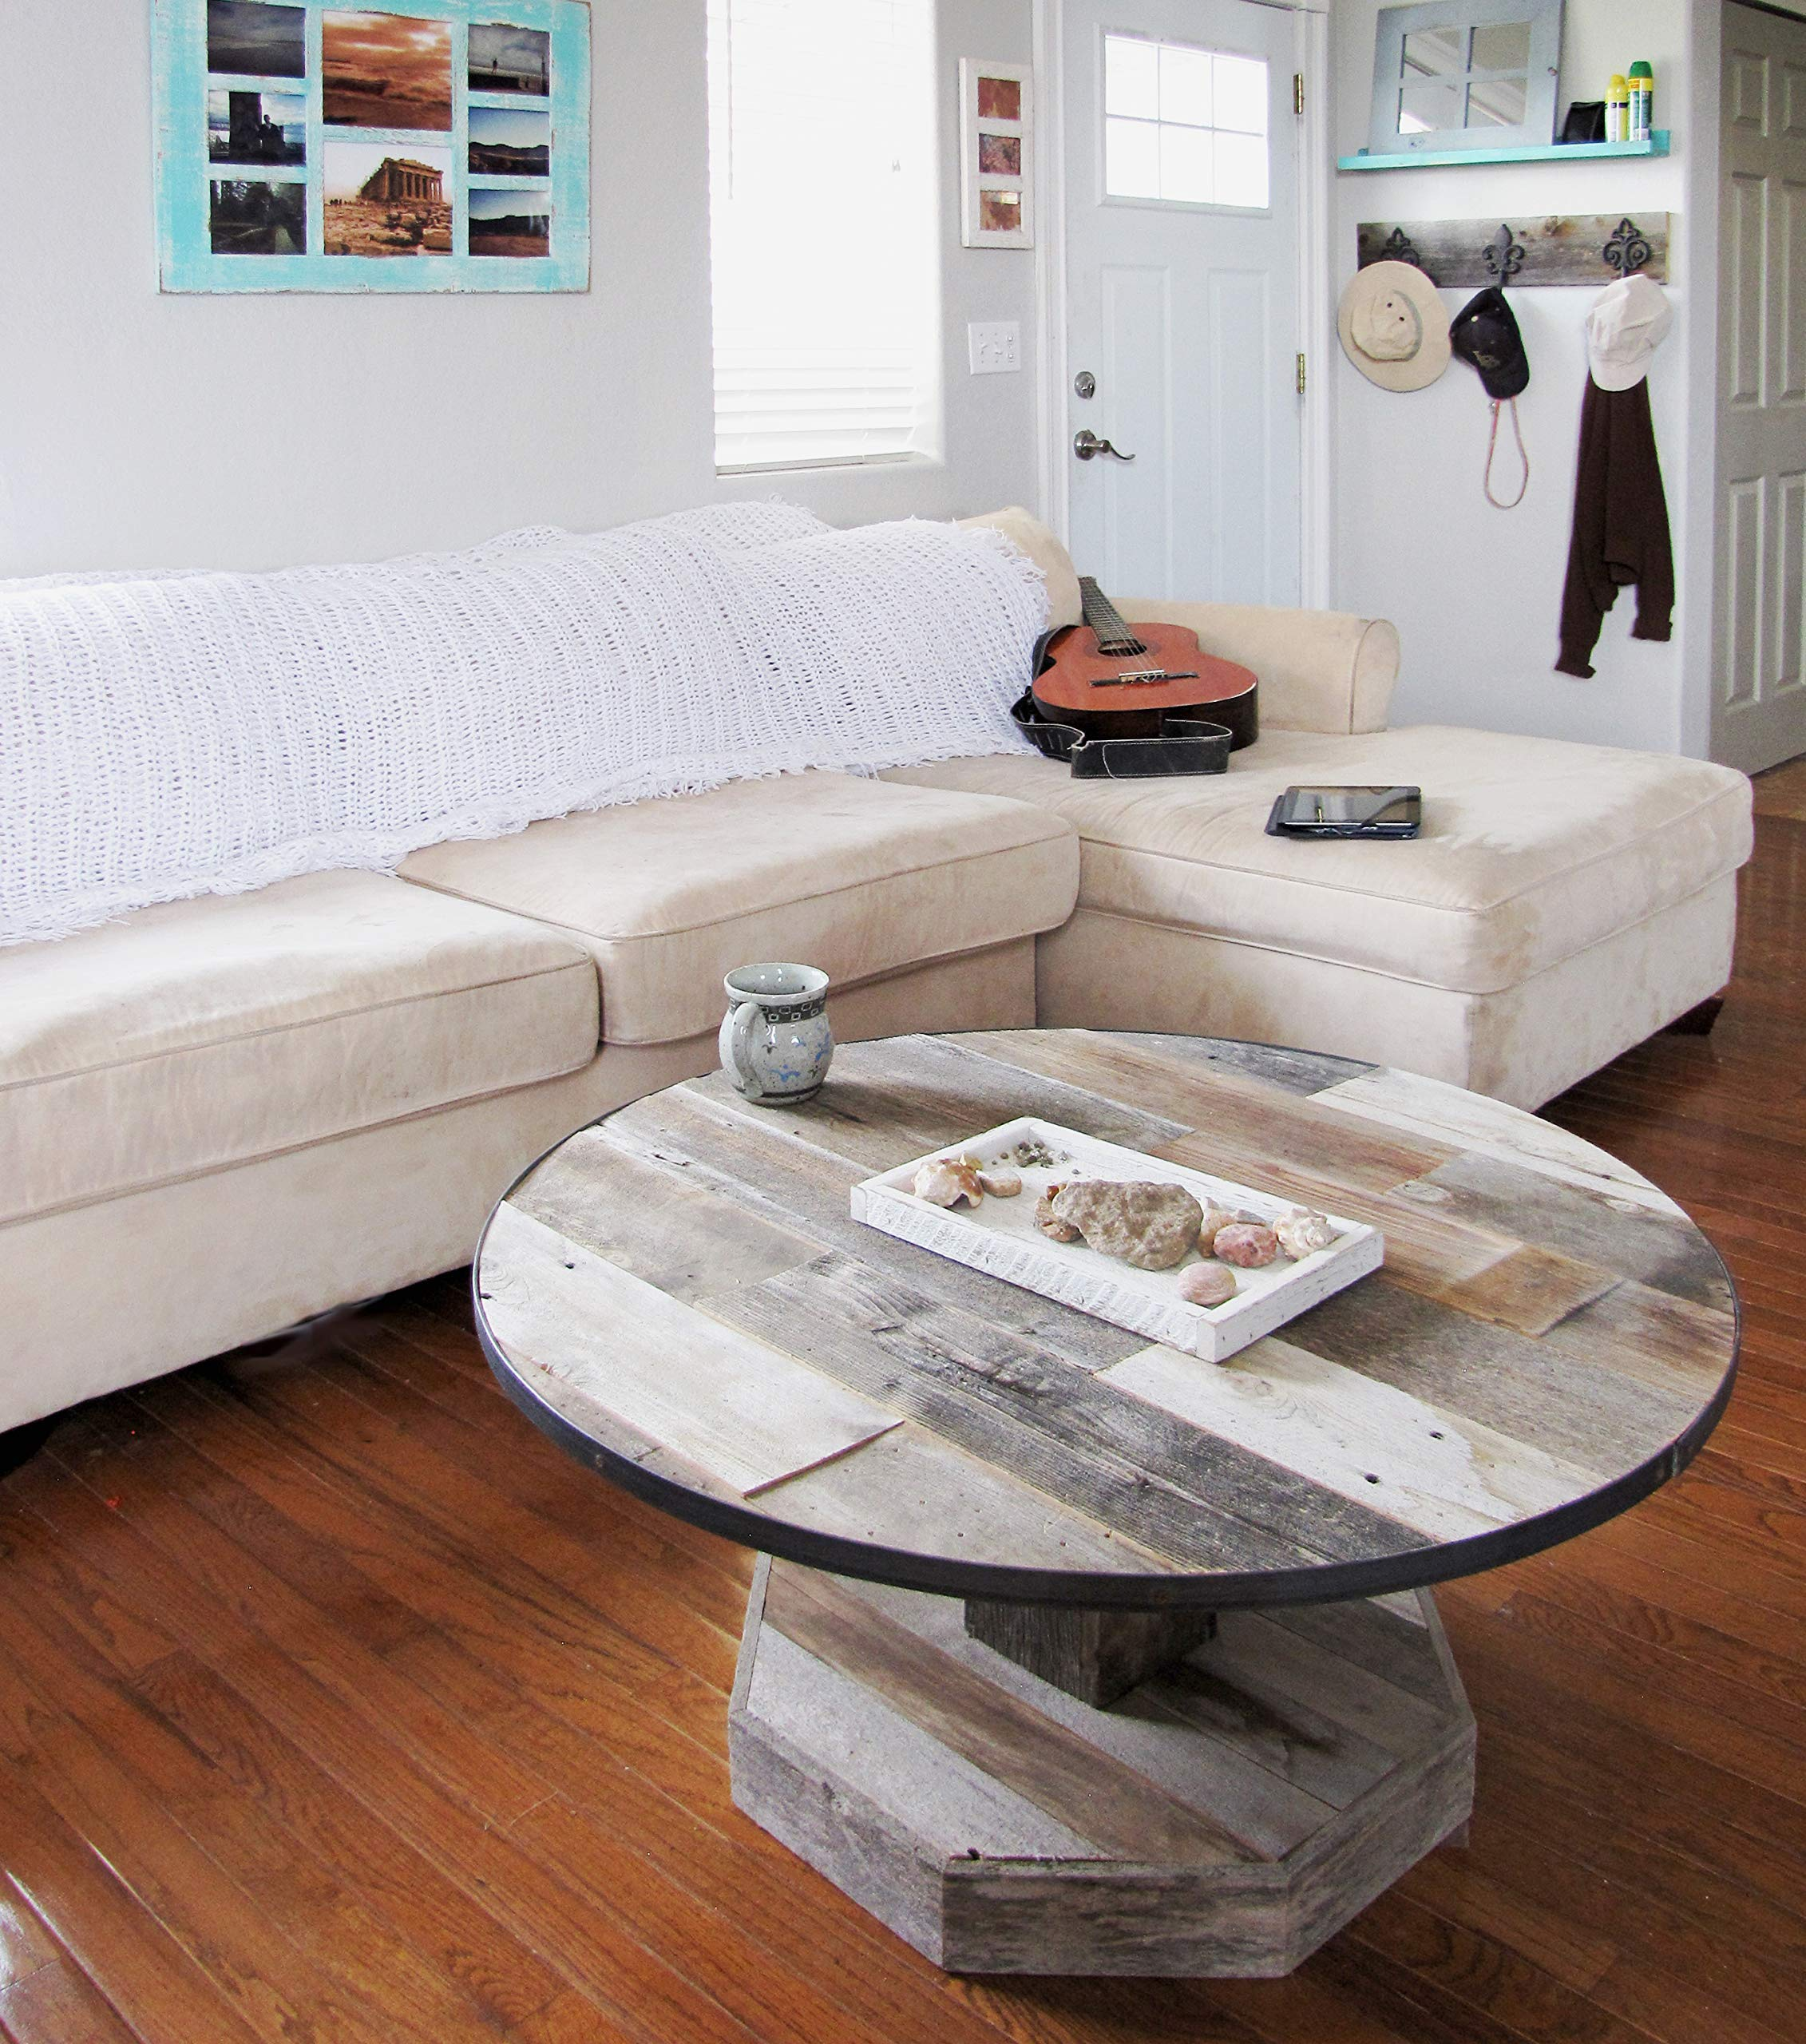 Round Rustic Reclaimed Wood Coffee Table With Metal Ring Rim Real Natural Barnwood Top With Pedestal Leg And Hexagon